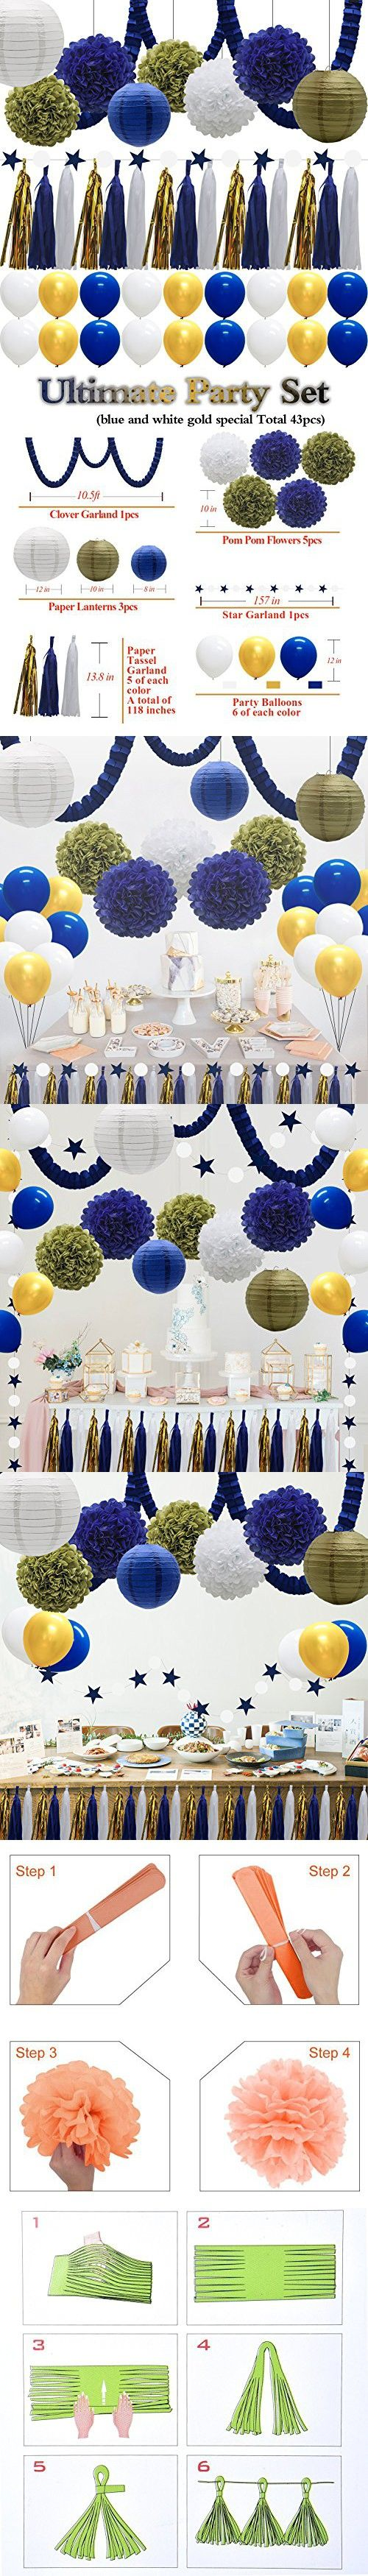 43pcs Paper Lanterns Tissue Flowers Pom Poms Party Decorations Tassel Garland Banner Clover Garland Balloons for Bridal Shower Graduation Bachelorette Celebrate First Birthday (Navy Blue, Gold)